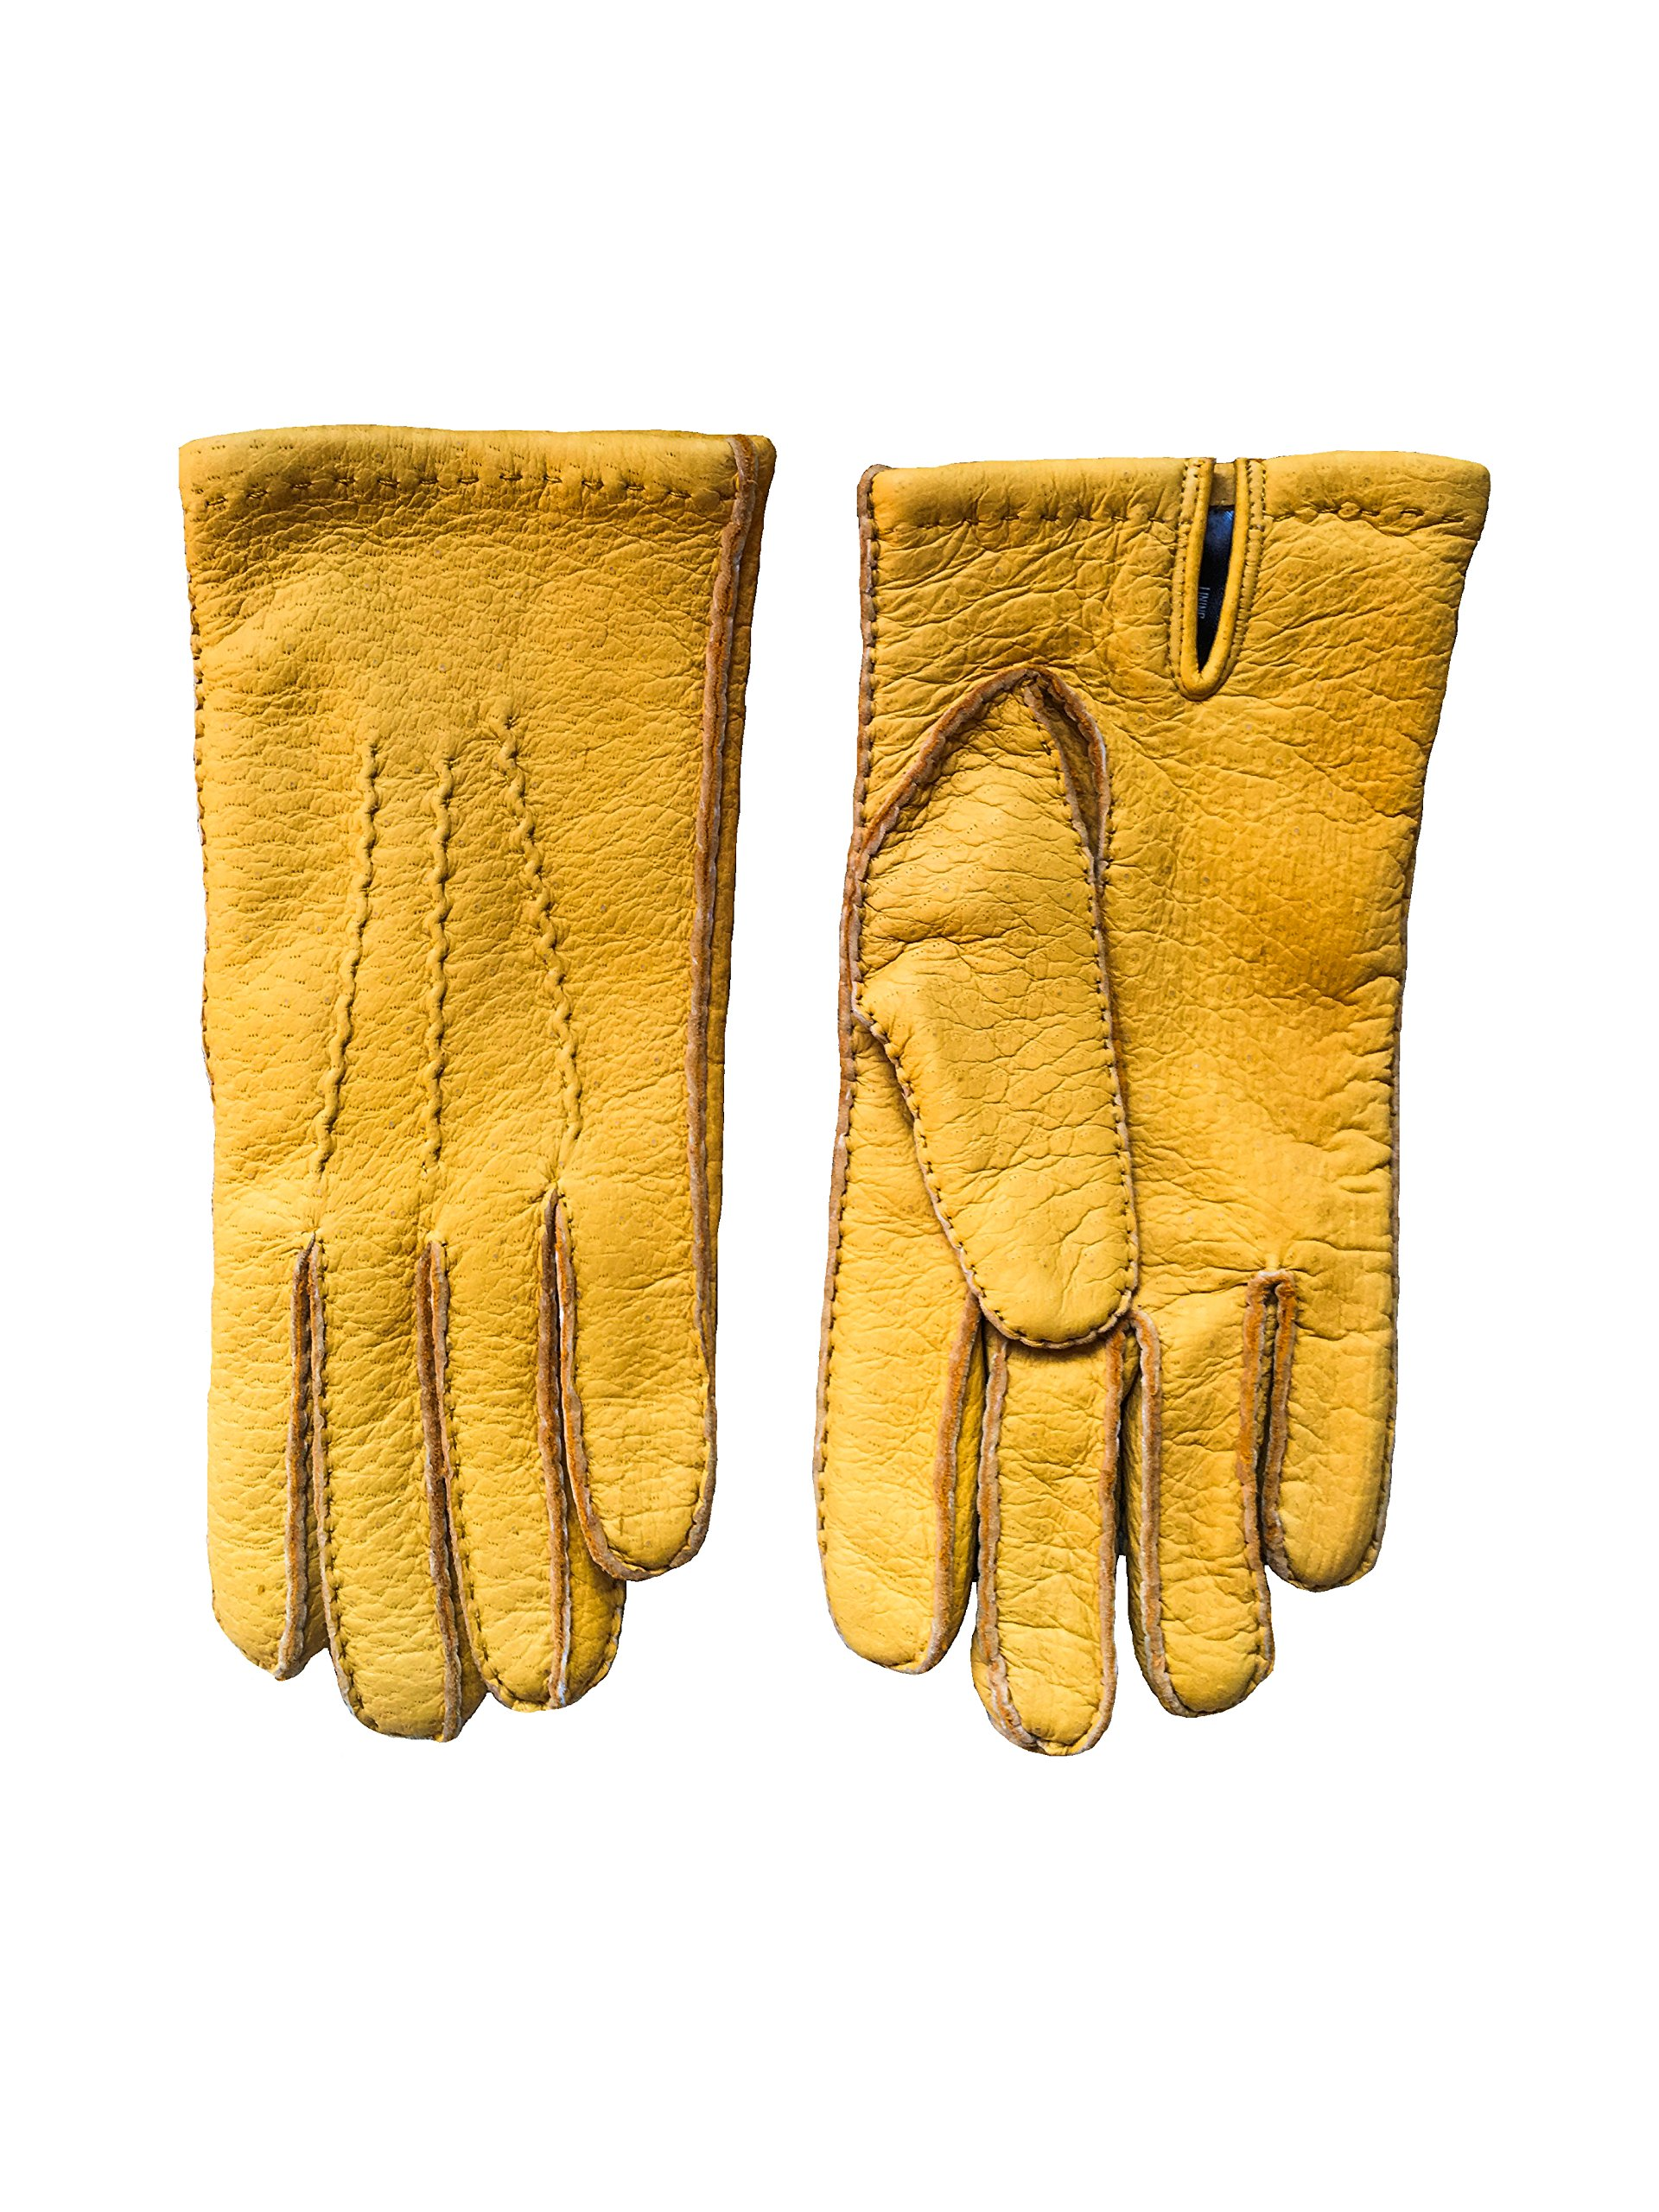 Men's Peccary Winter Leather Gloves Cashmere Lined Hand Sewn Color Yellow by Hungant (9, Yellow)